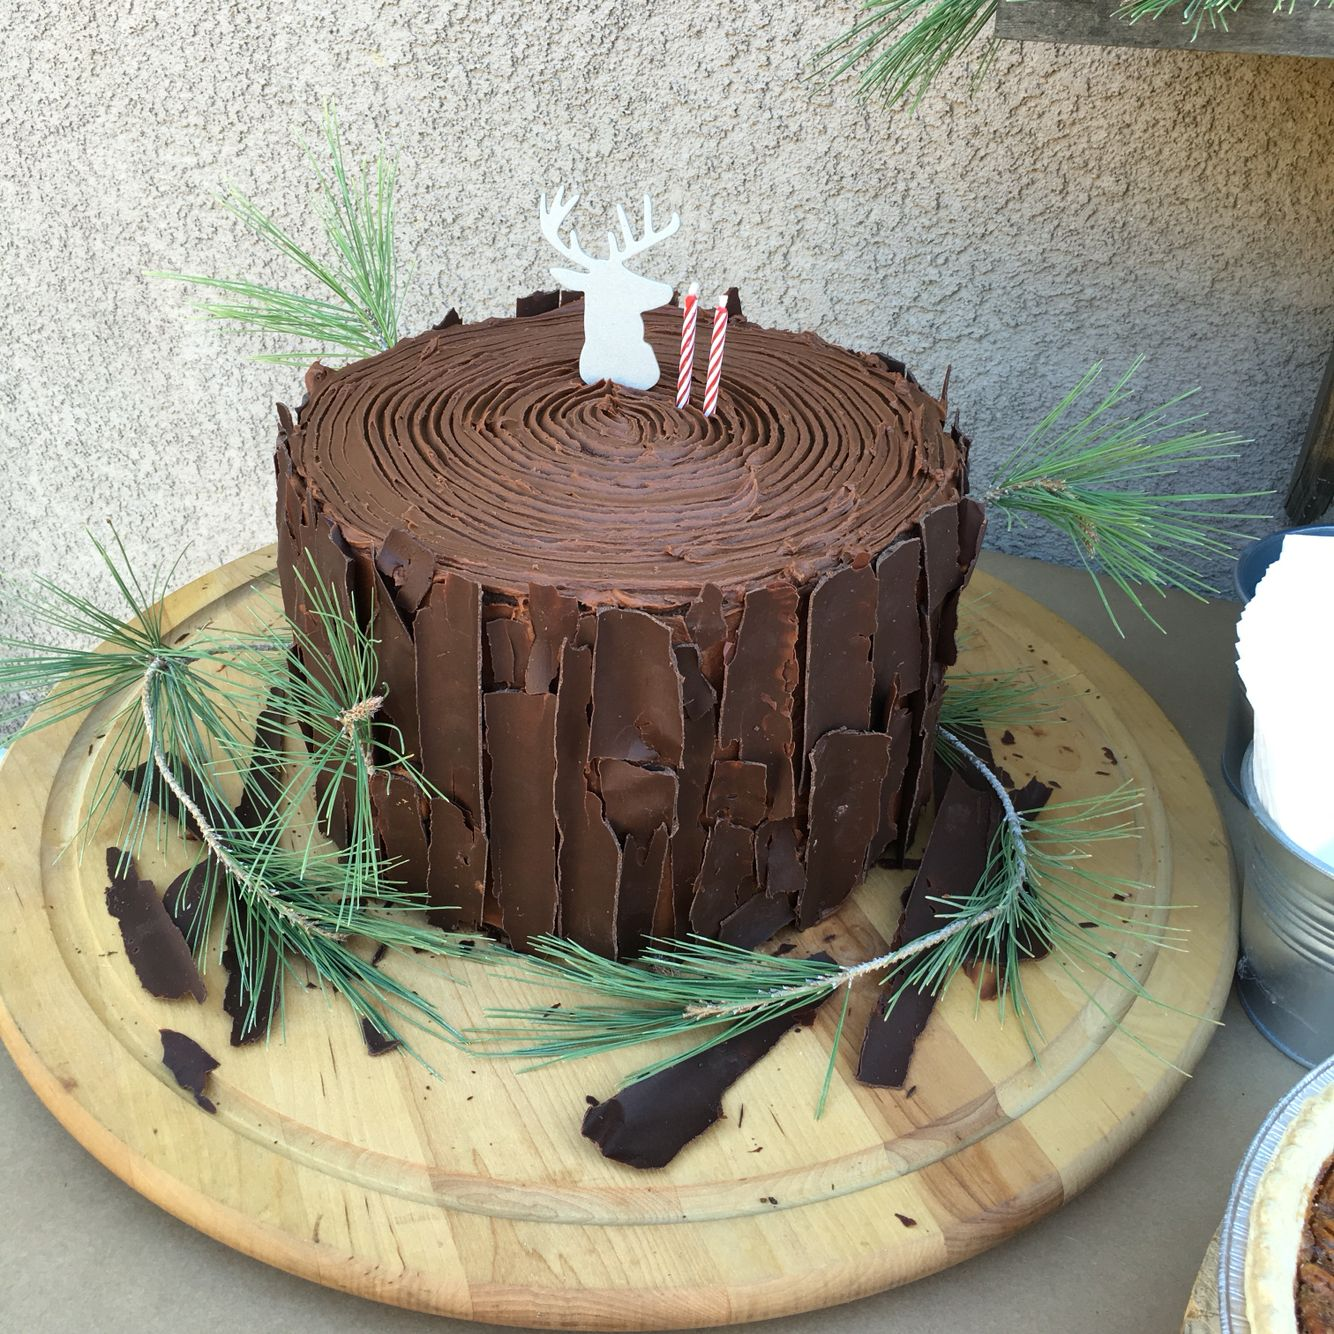 Tree Stump Cake For My 2yrs Old Nephew. Lumber Jack Party